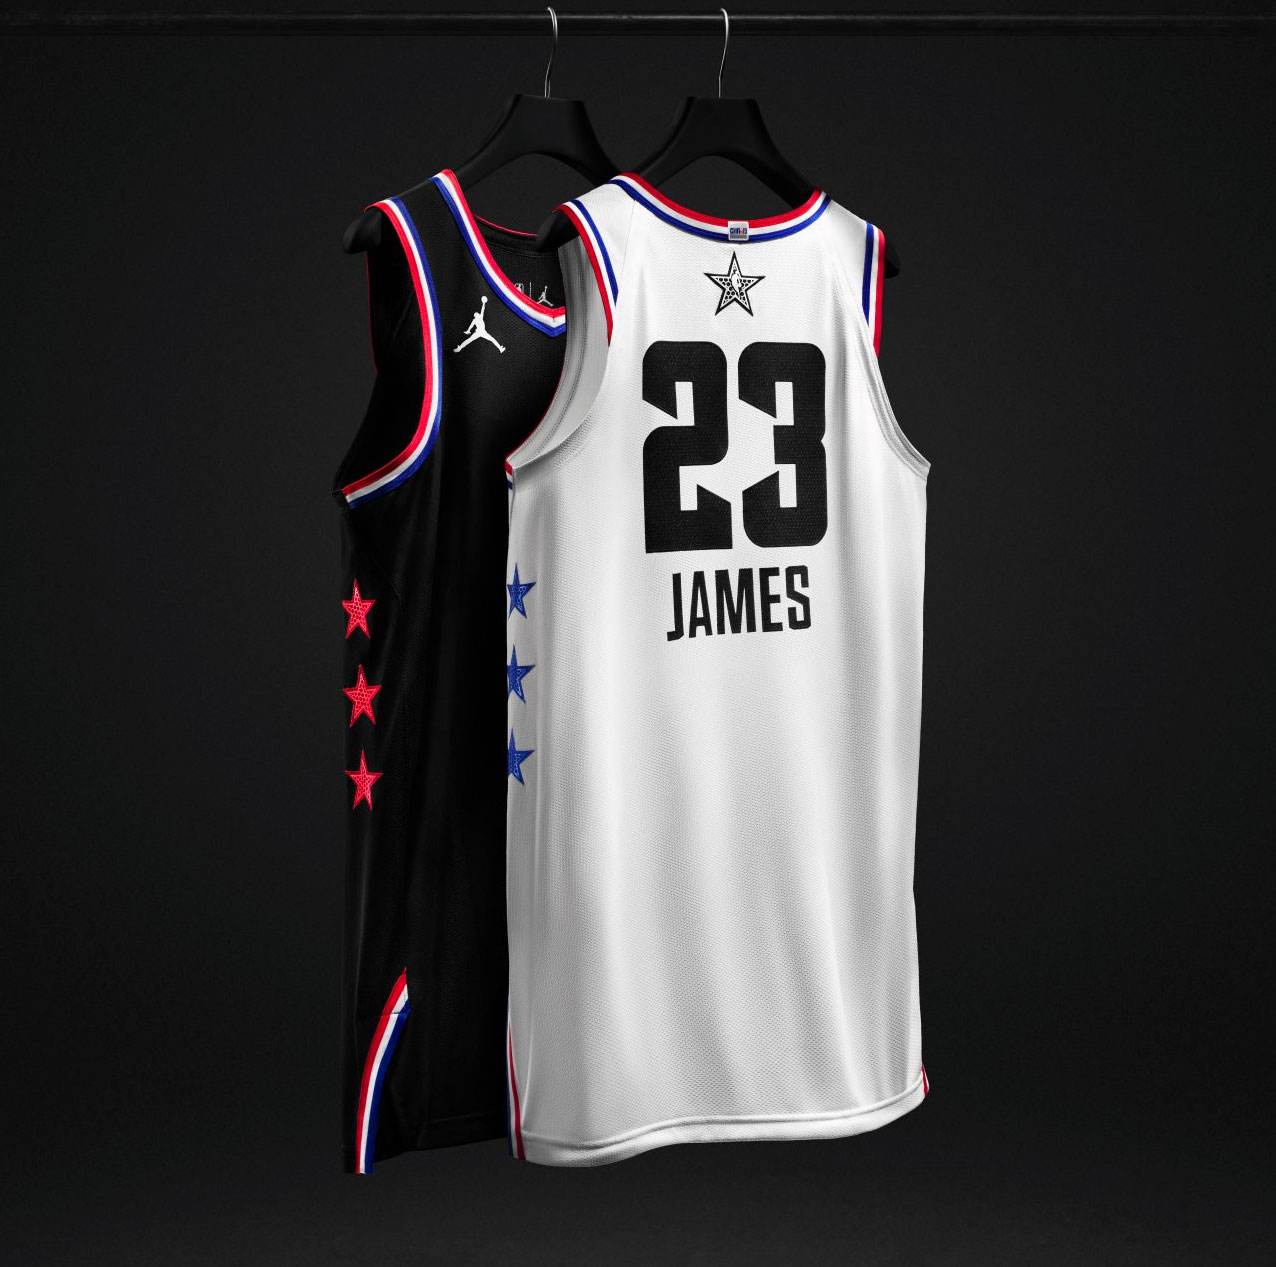 6bf490e065e It s the second NBA All-Star Game in a row that we ve seen the  black-and-white style uniforms with large team logos on the front